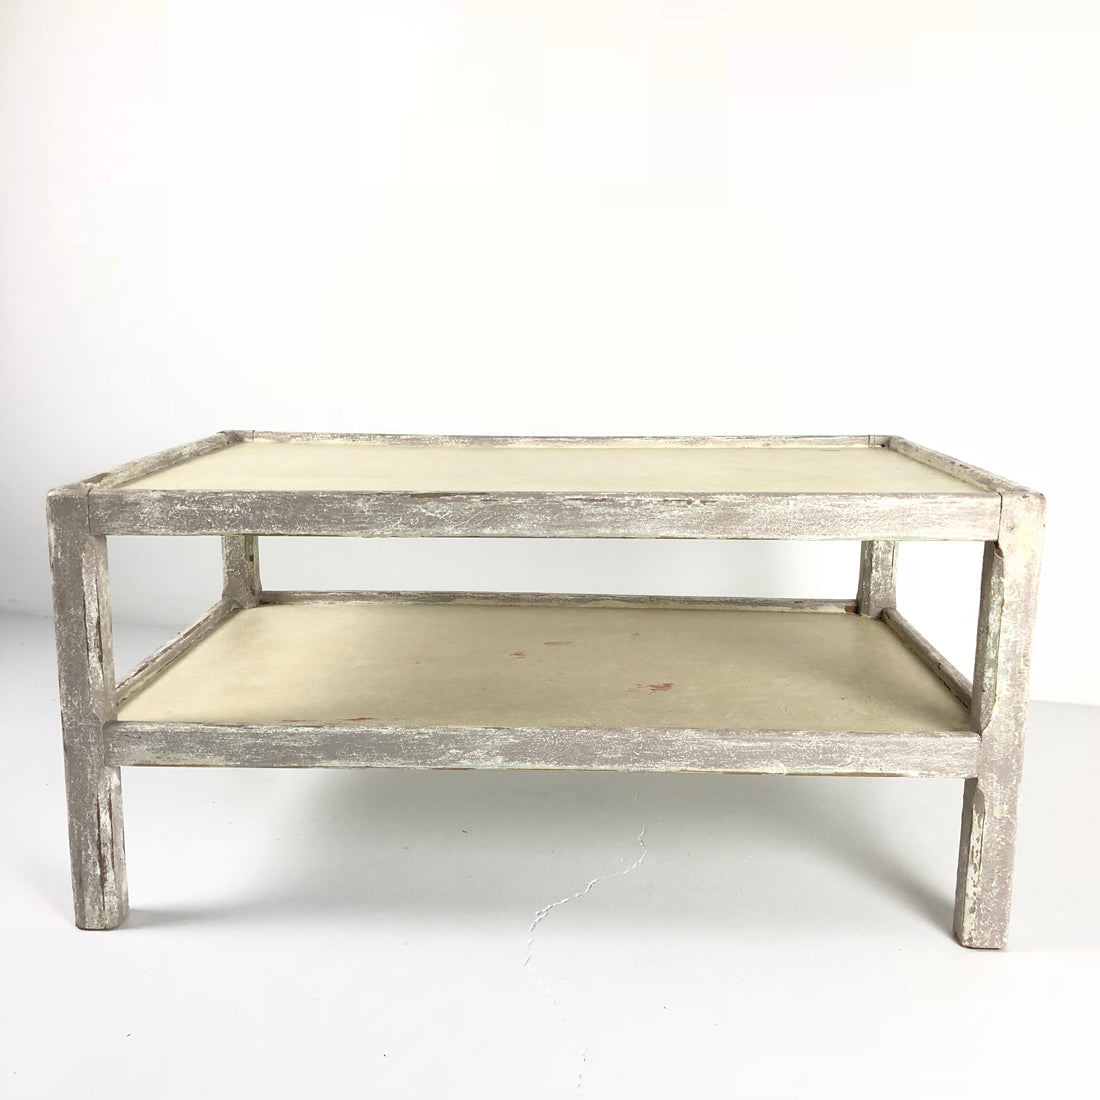 Vintage Painted Coffee Table with Shelf